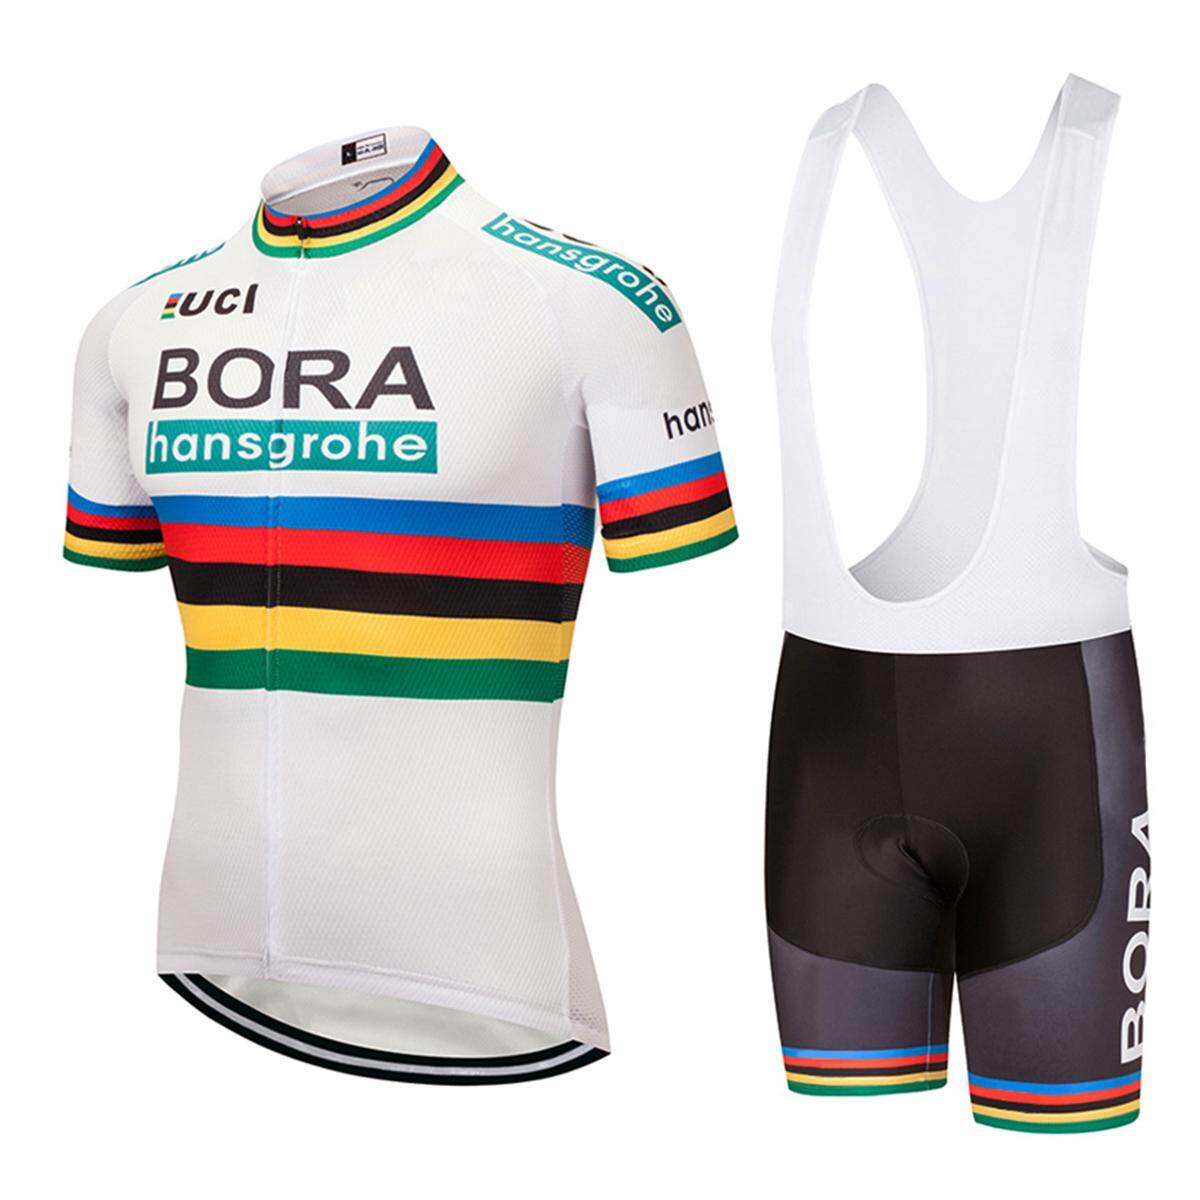 Bike Jerseys for Men for sale - Cycling Jersey for Men online brands, prices & reviews in Philippines | Lazada.com.ph